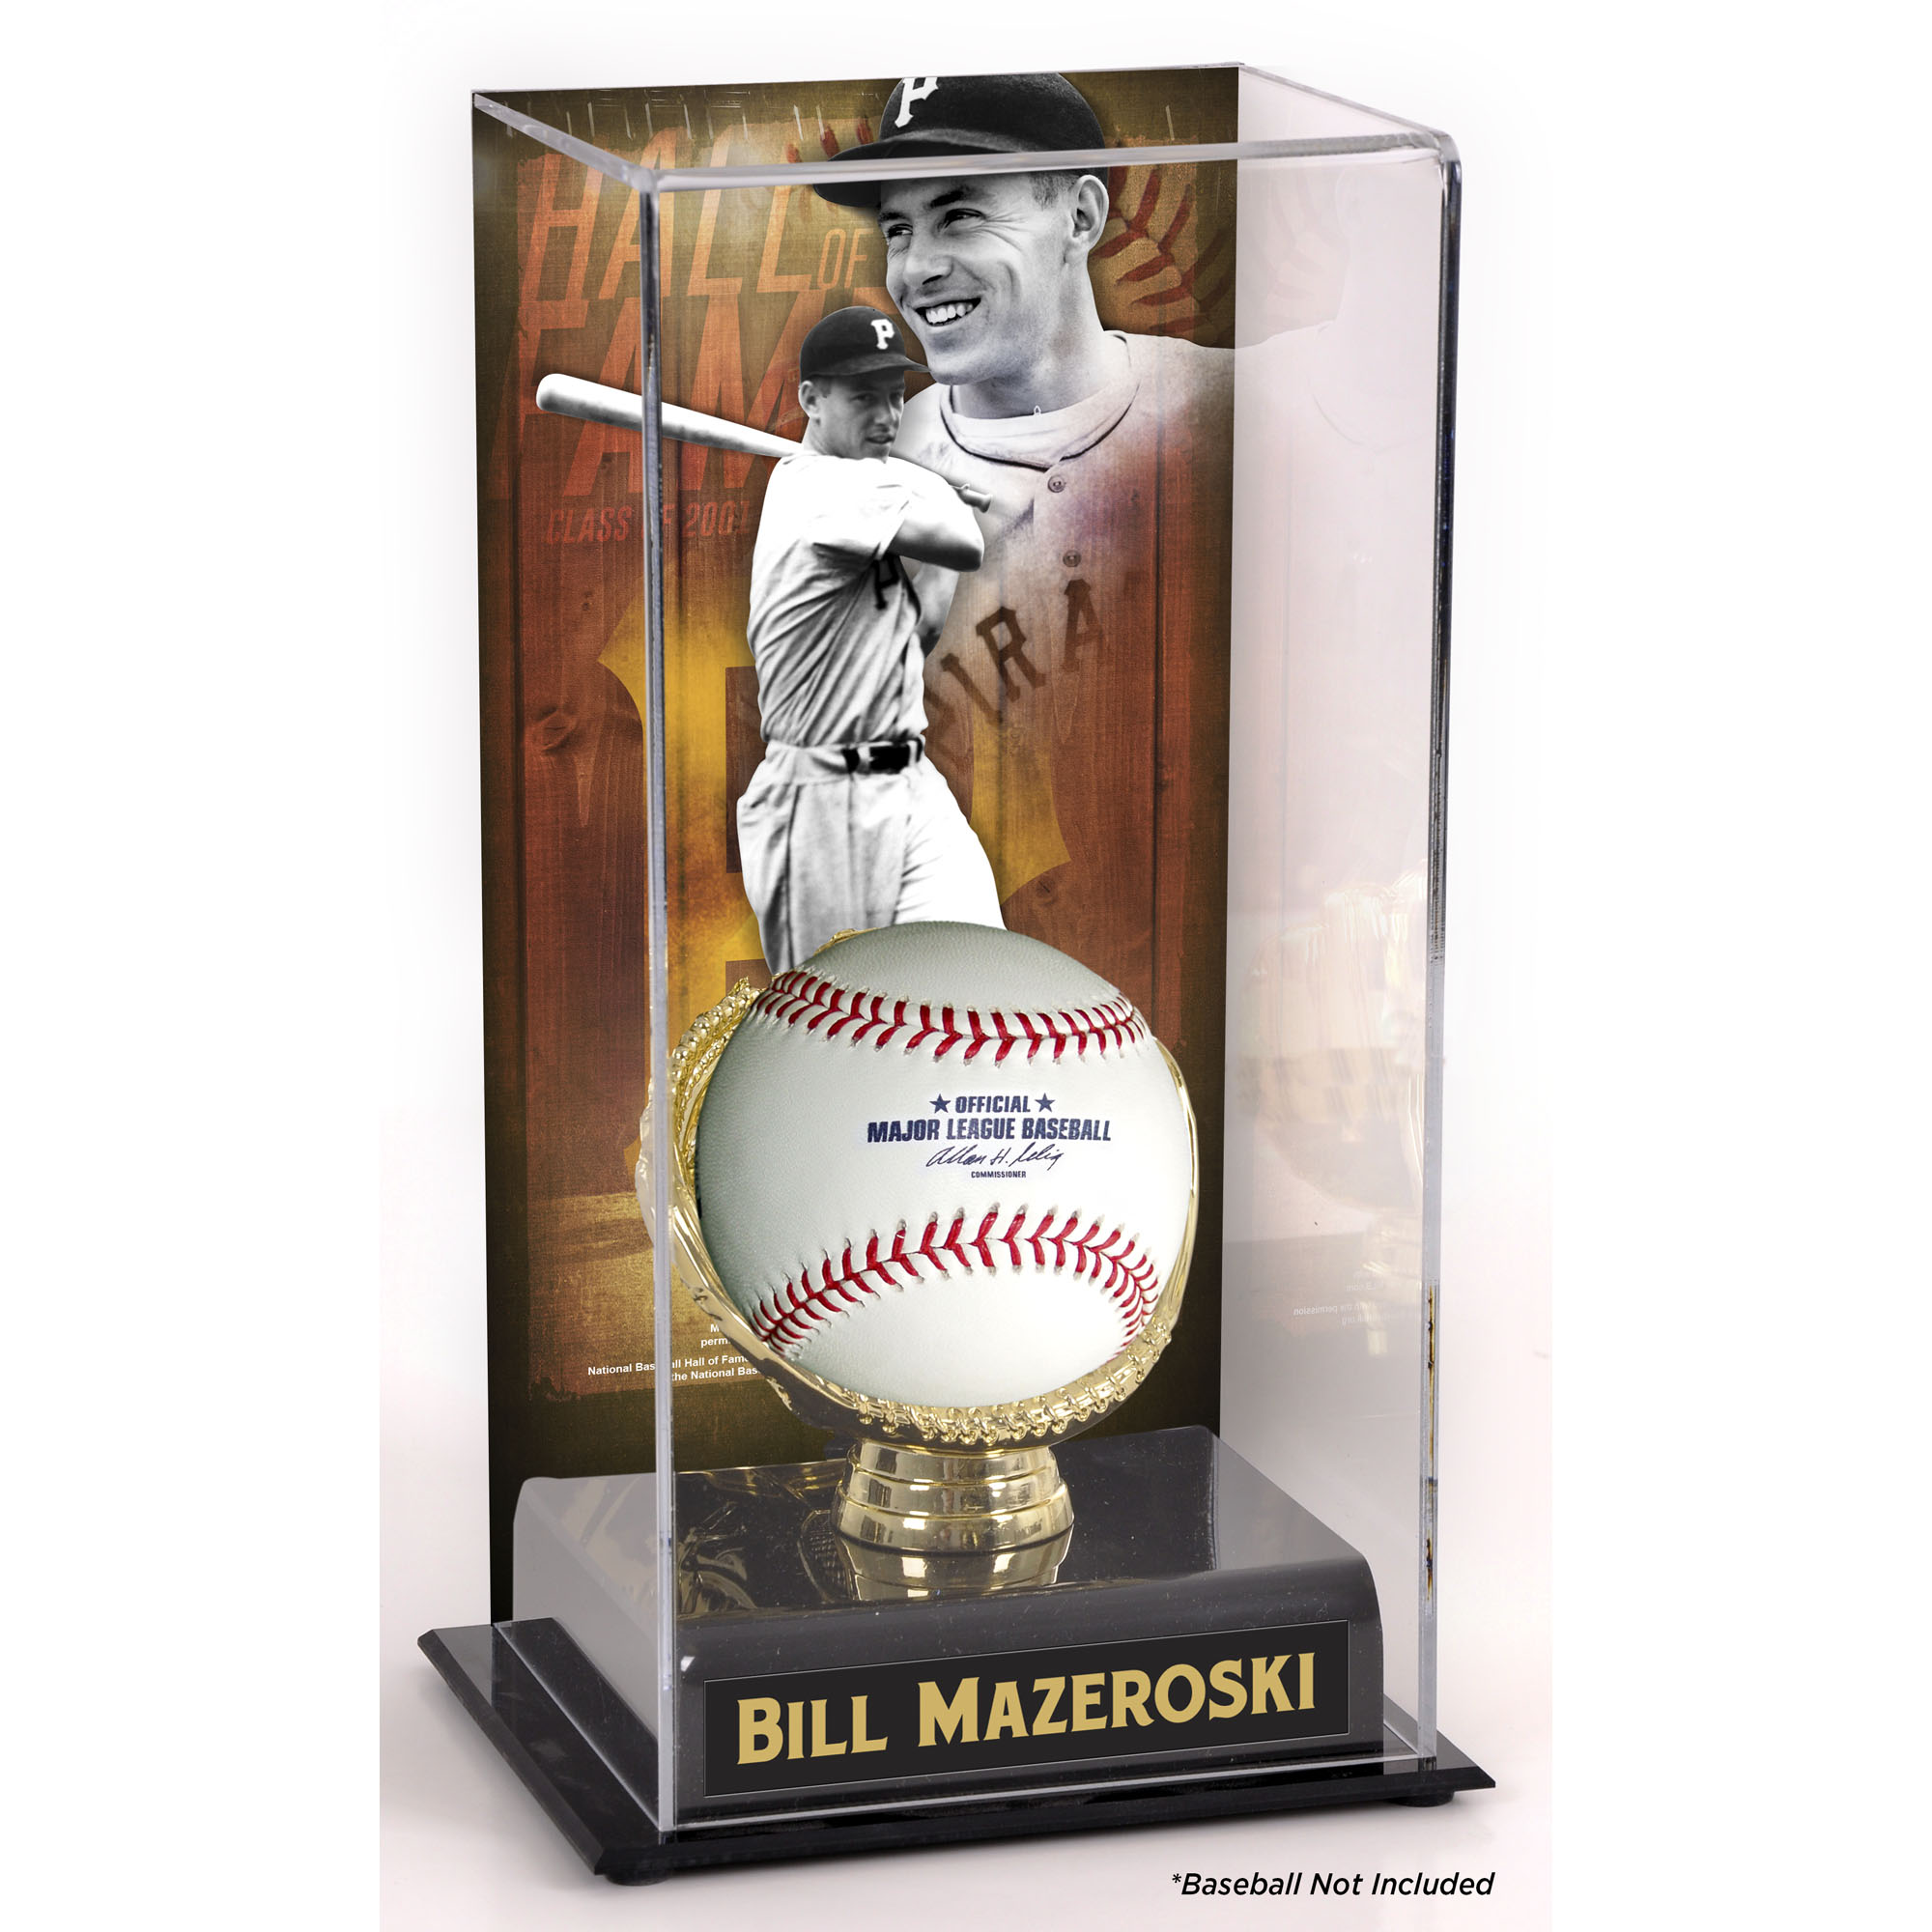 Bill Mazeroski Pittsburgh Pirates Fanatics Authentic Hall of Fame Sublimated Display Case with Image - No Size